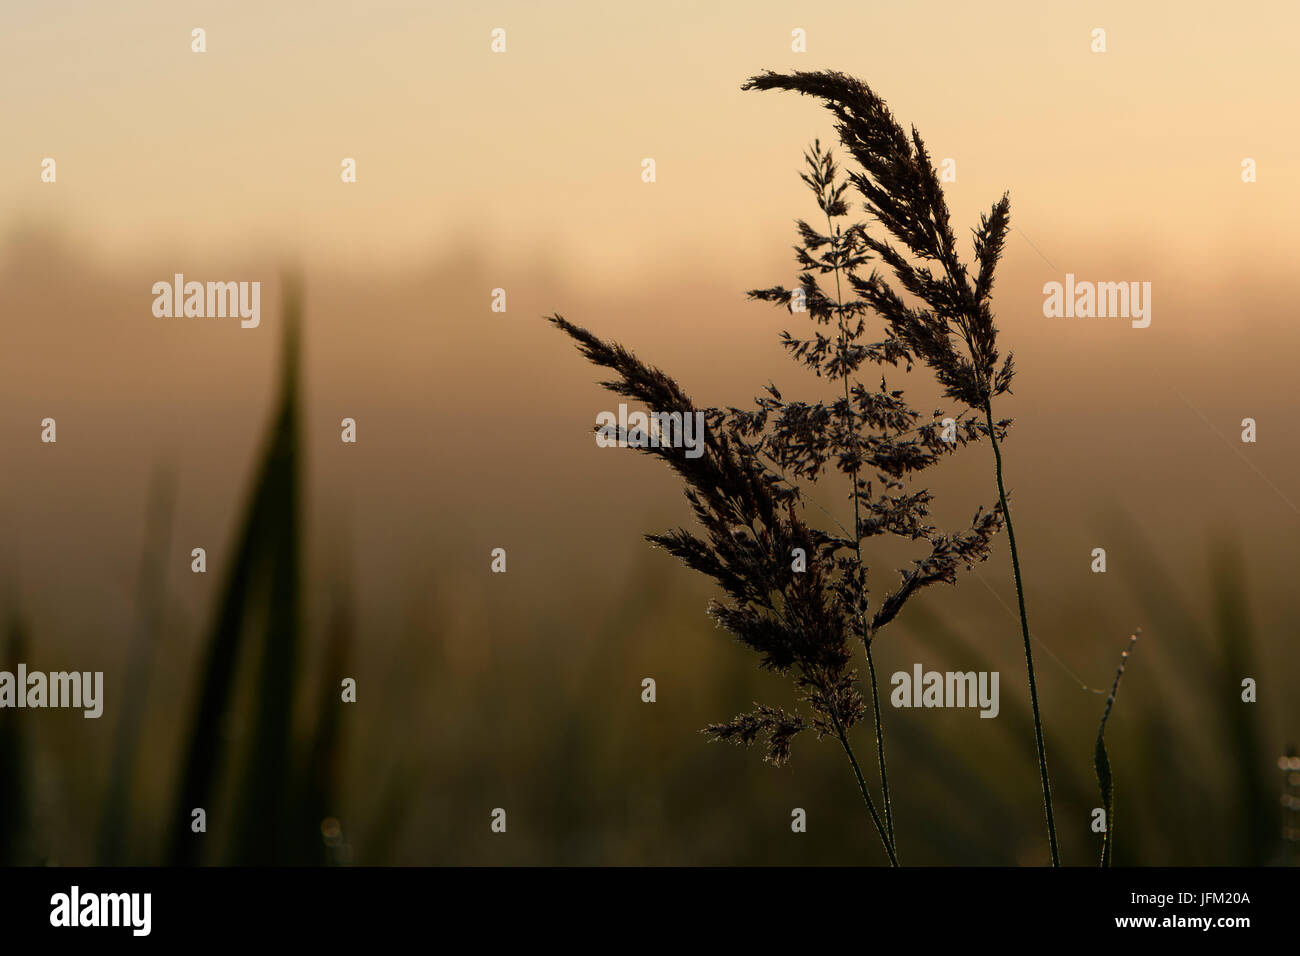 Grasses with dew in backlight during sunrise - Stock Image